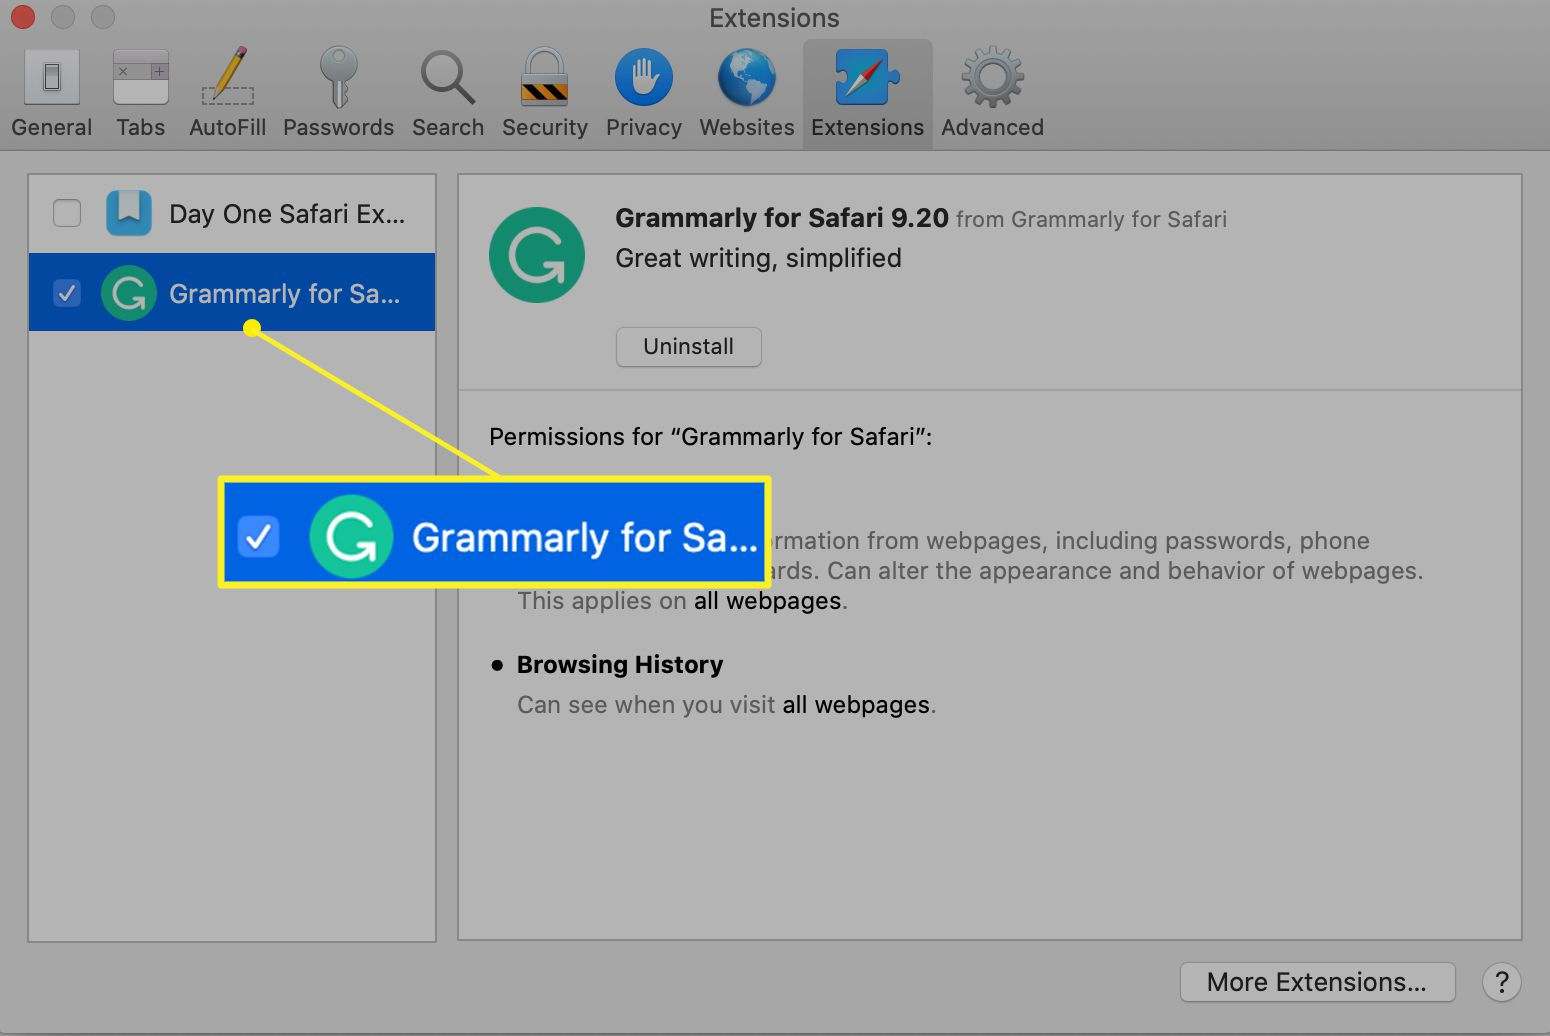 Grammarly extension selected in Extensions preferences